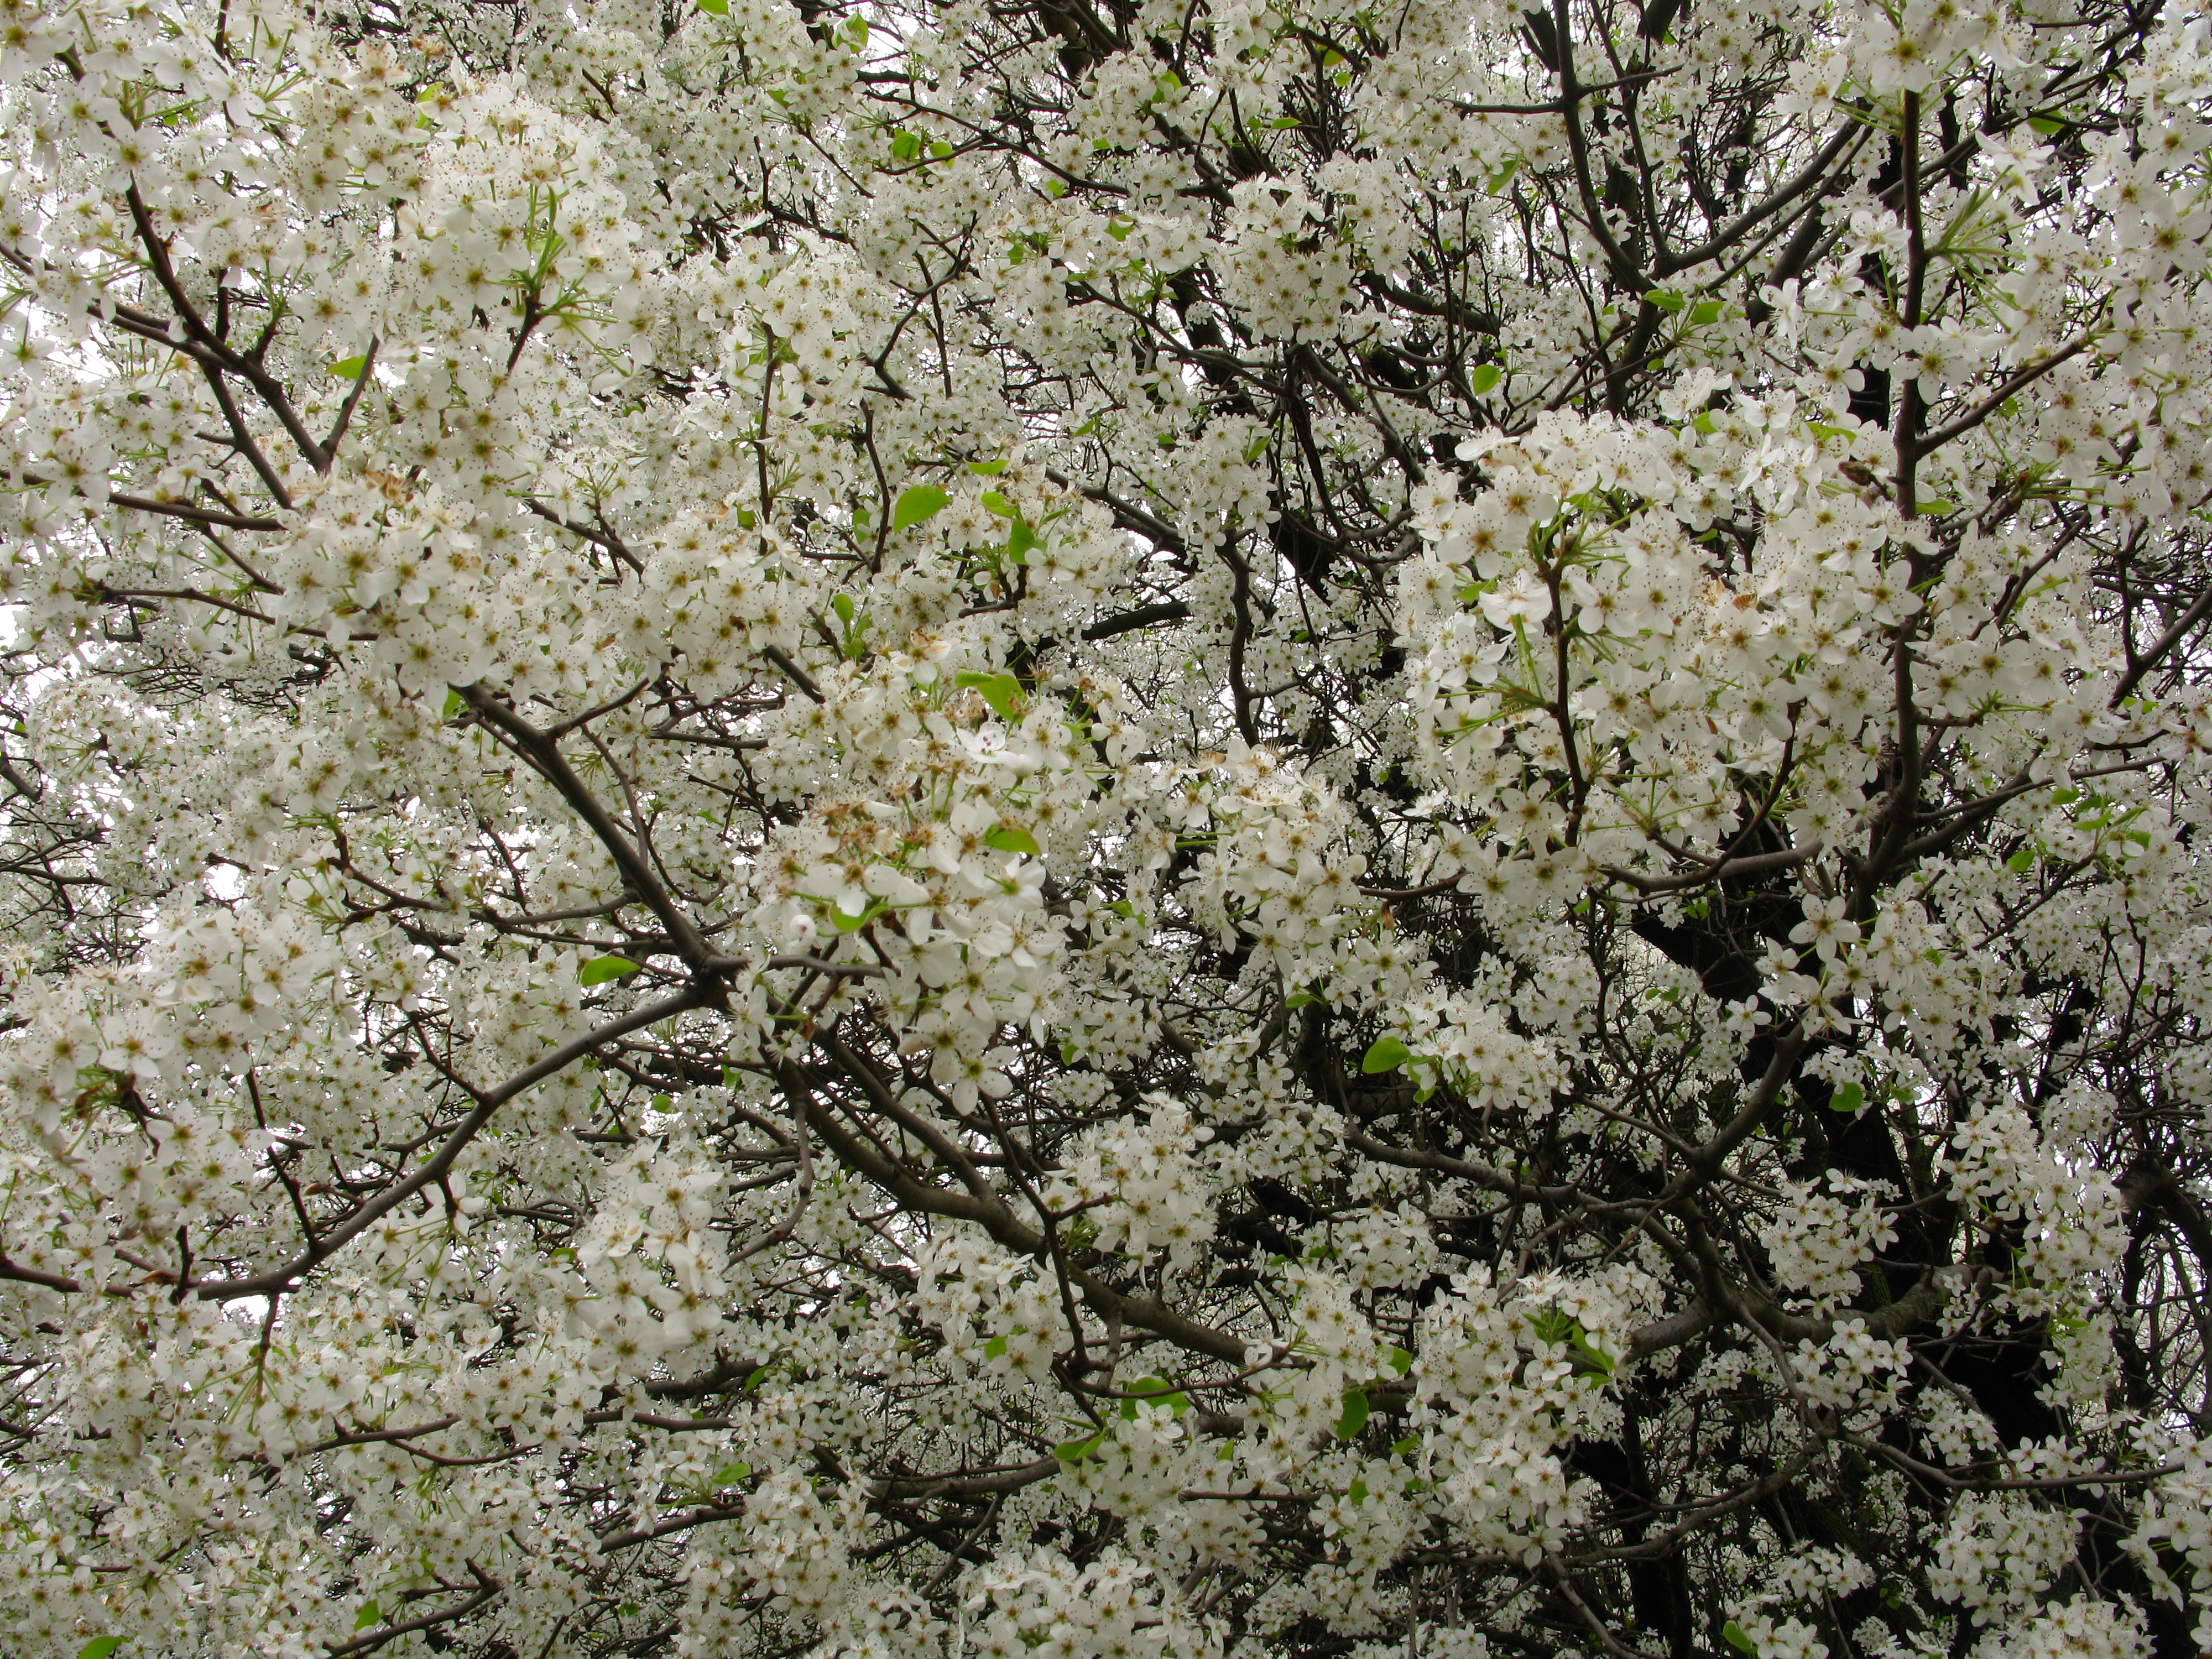 White Flowers Everywhere Blooming Tree Trees Nature 4000x3000